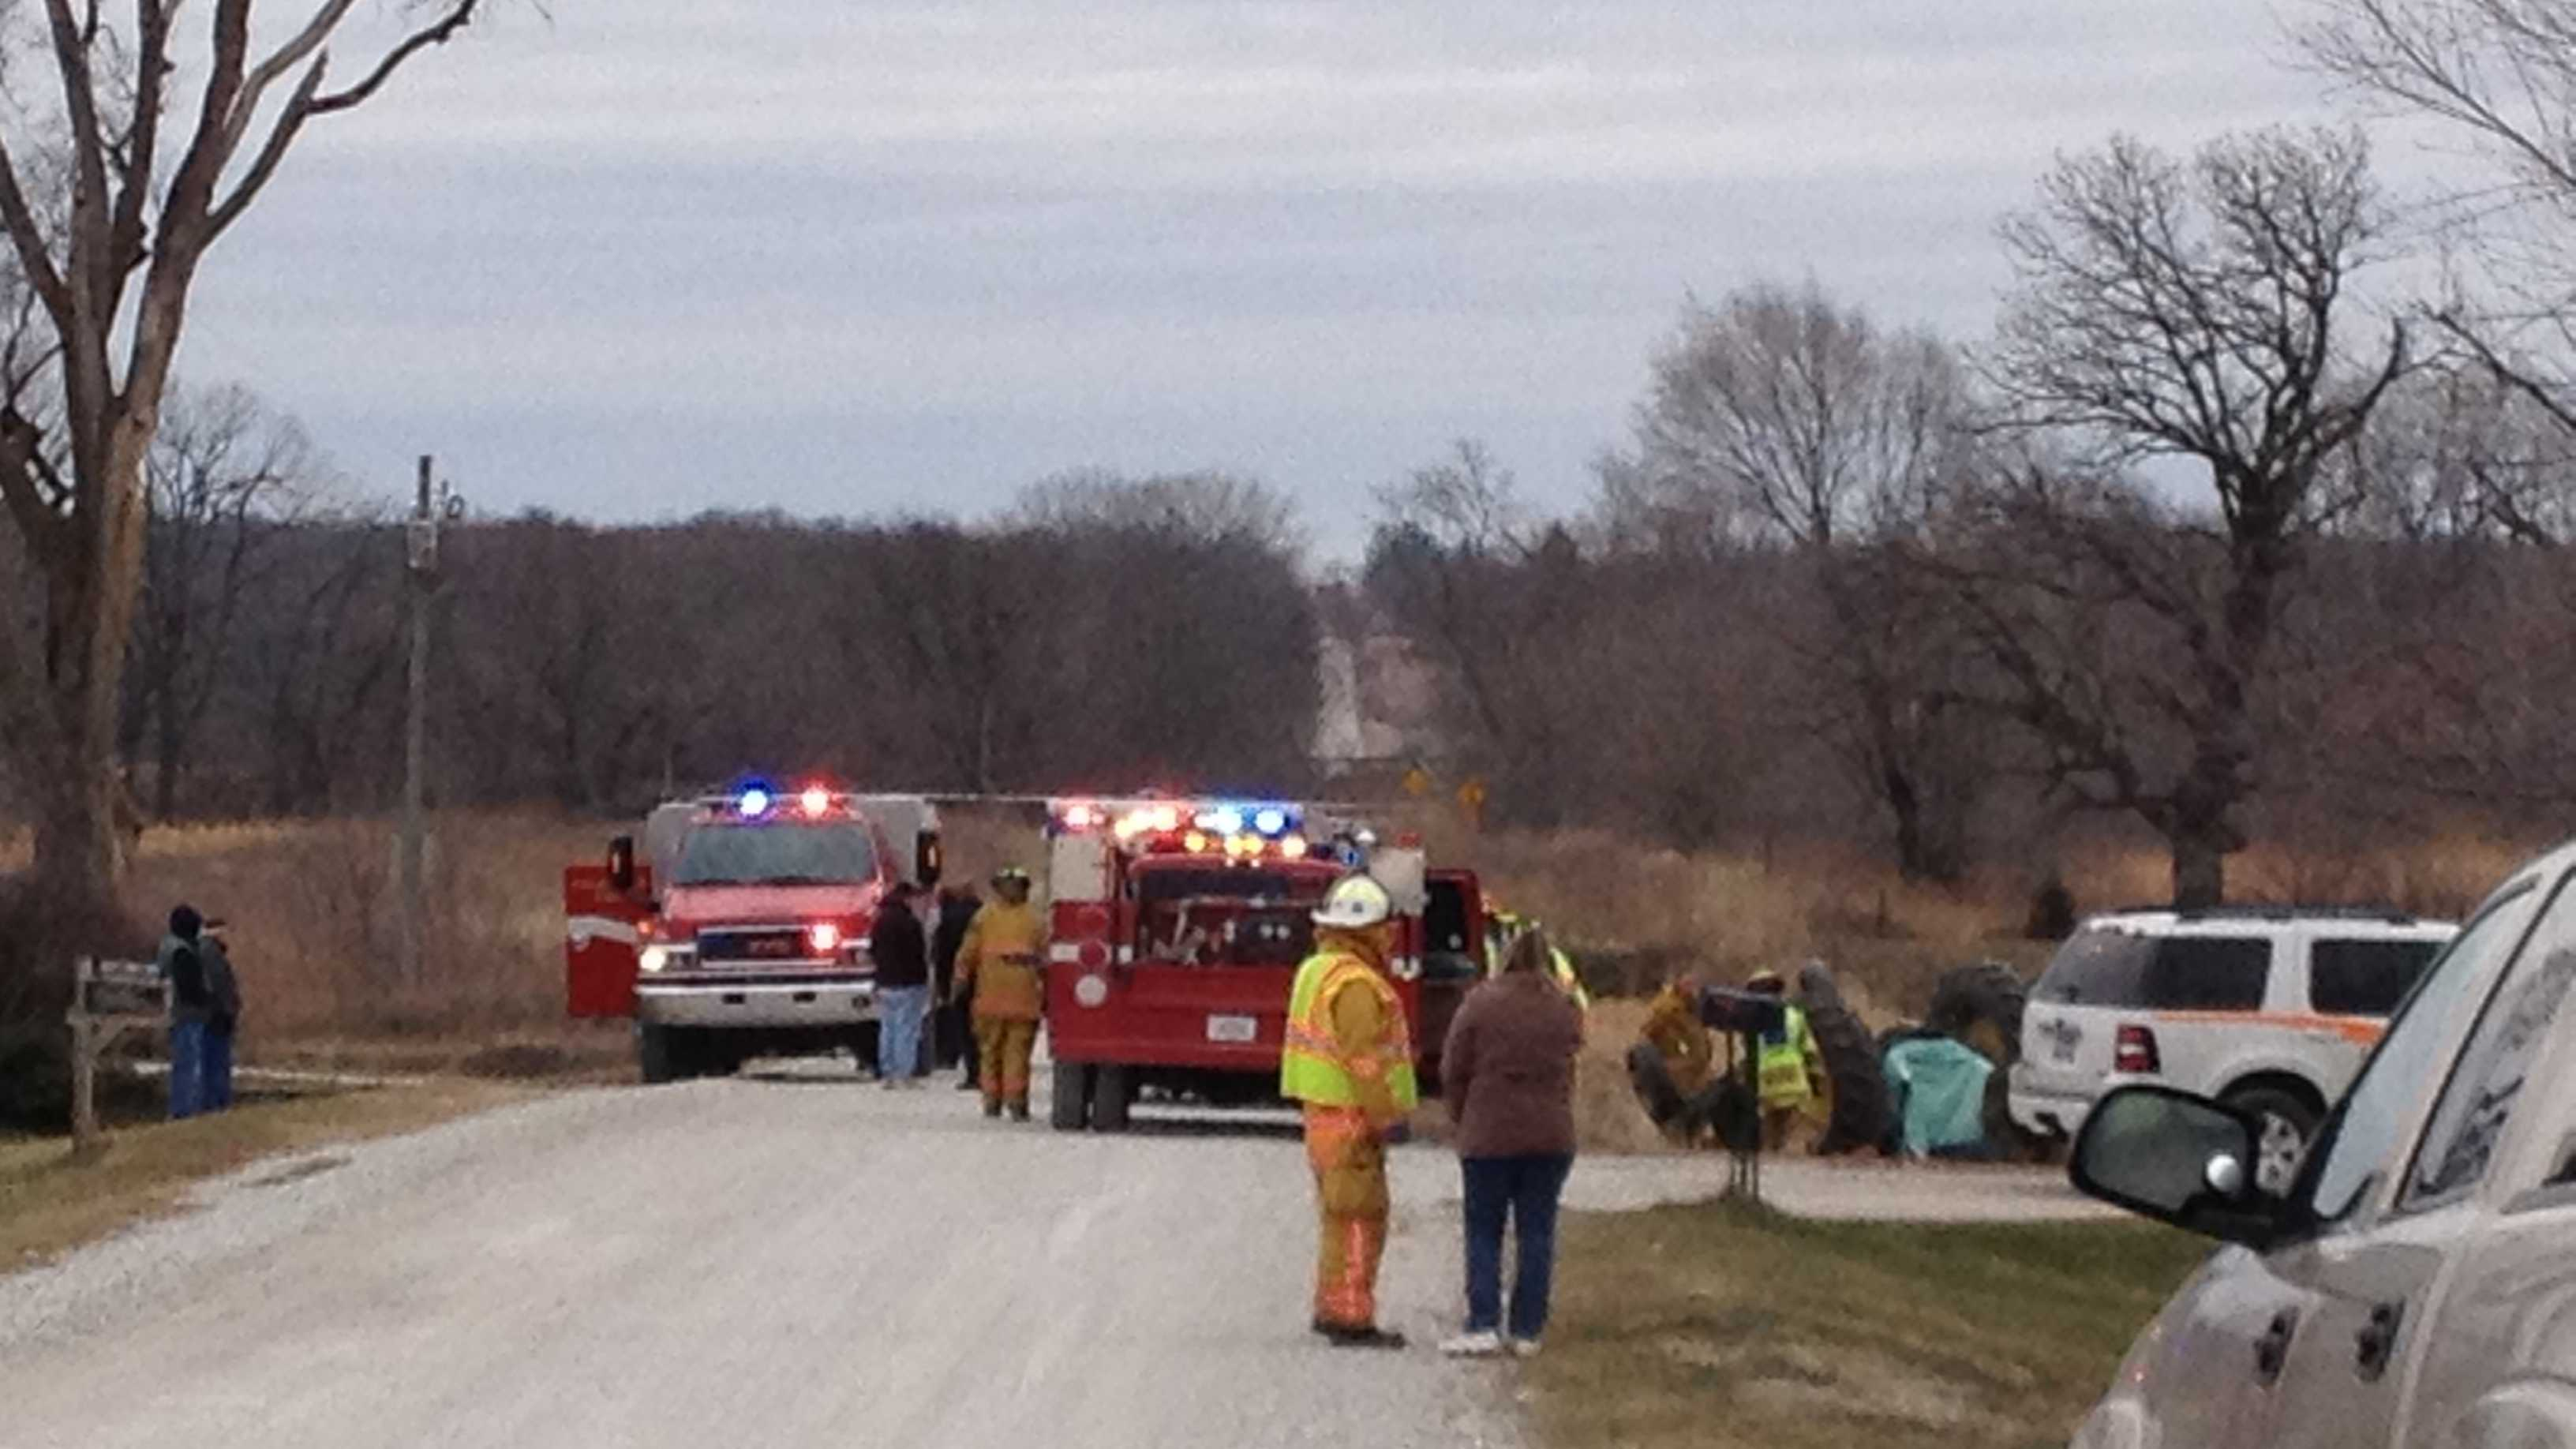 Rescue crews work to free a 9-year-old girl who is pinned under a tractor near Cambridge.